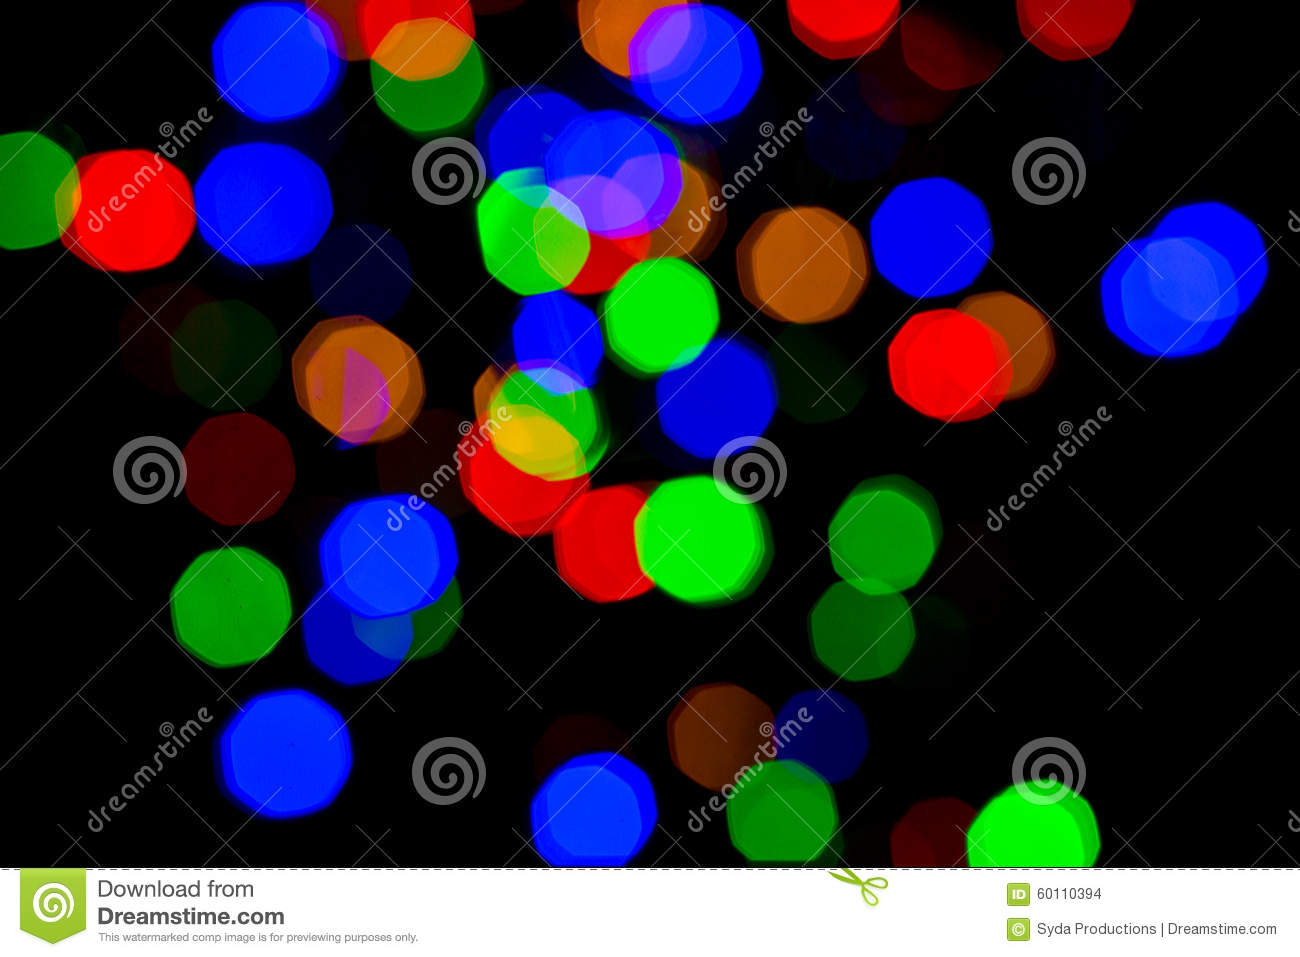 Colorful bright night lights over black background